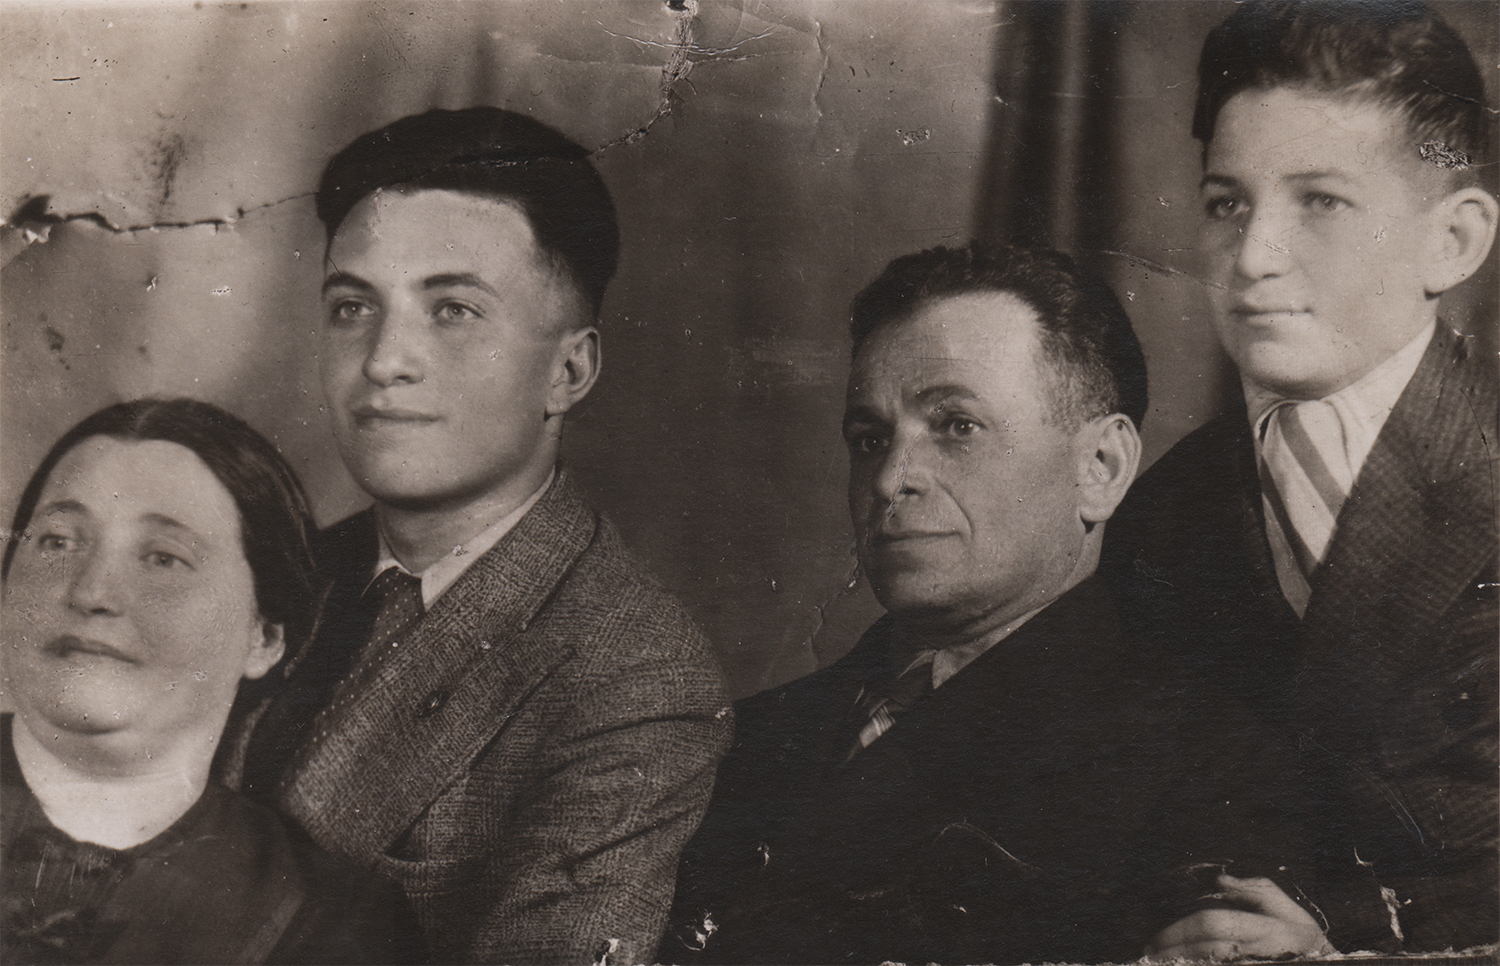 Yona (top right) with his older brother and their parents, Esfir and Iosif. Kyiv, 1938